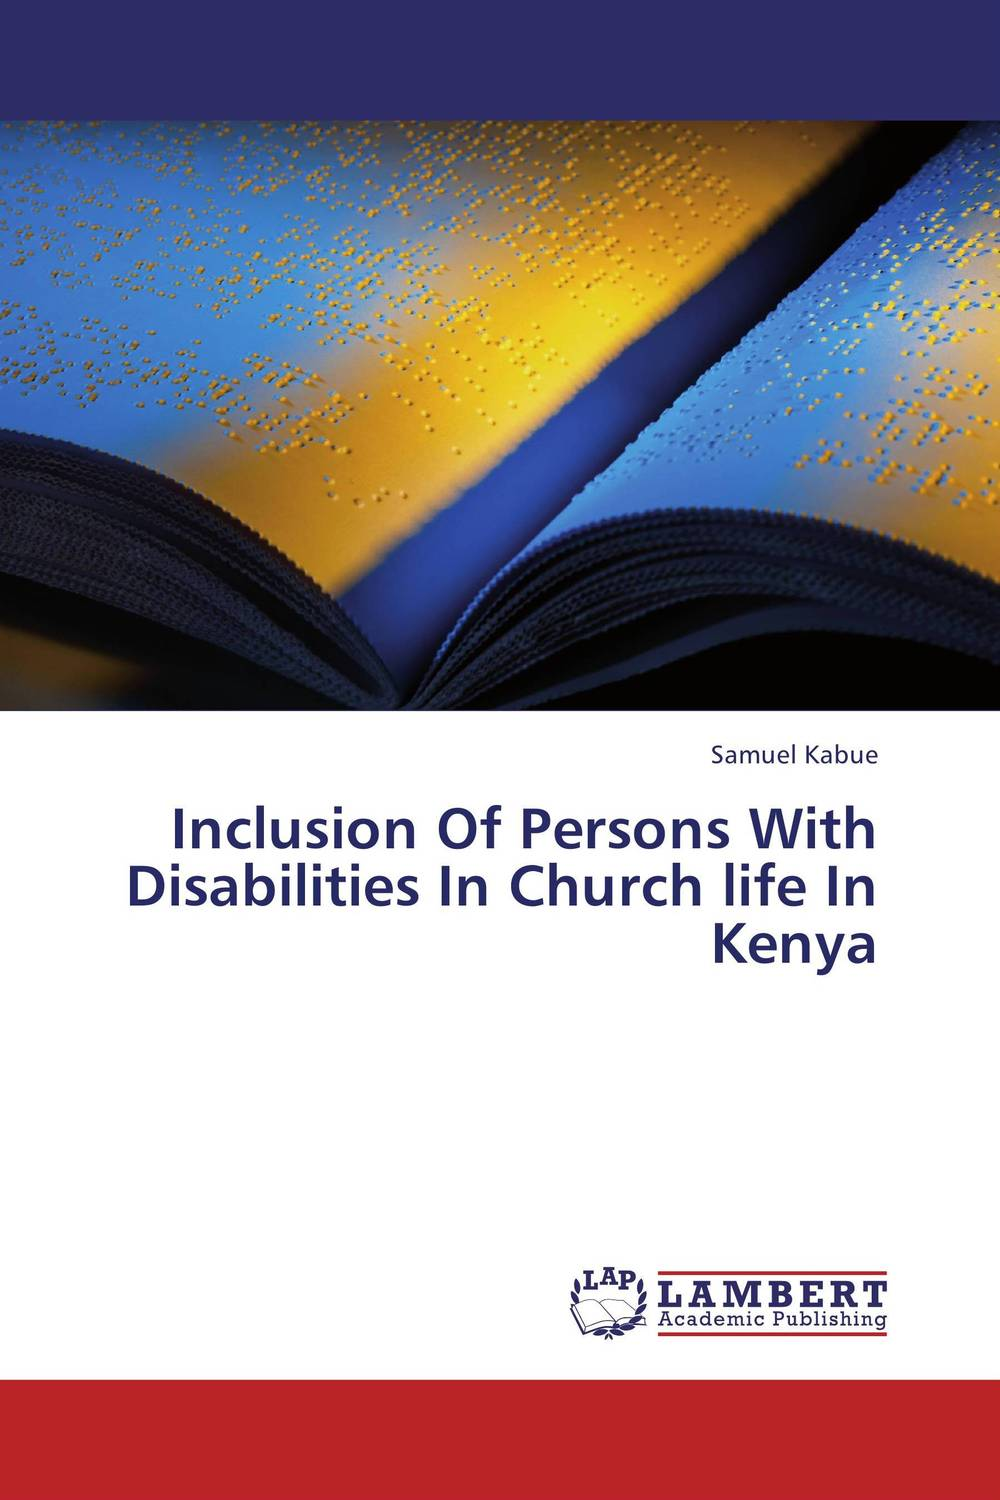 Inclusion Of Persons With Disabilities In Church life In Kenya